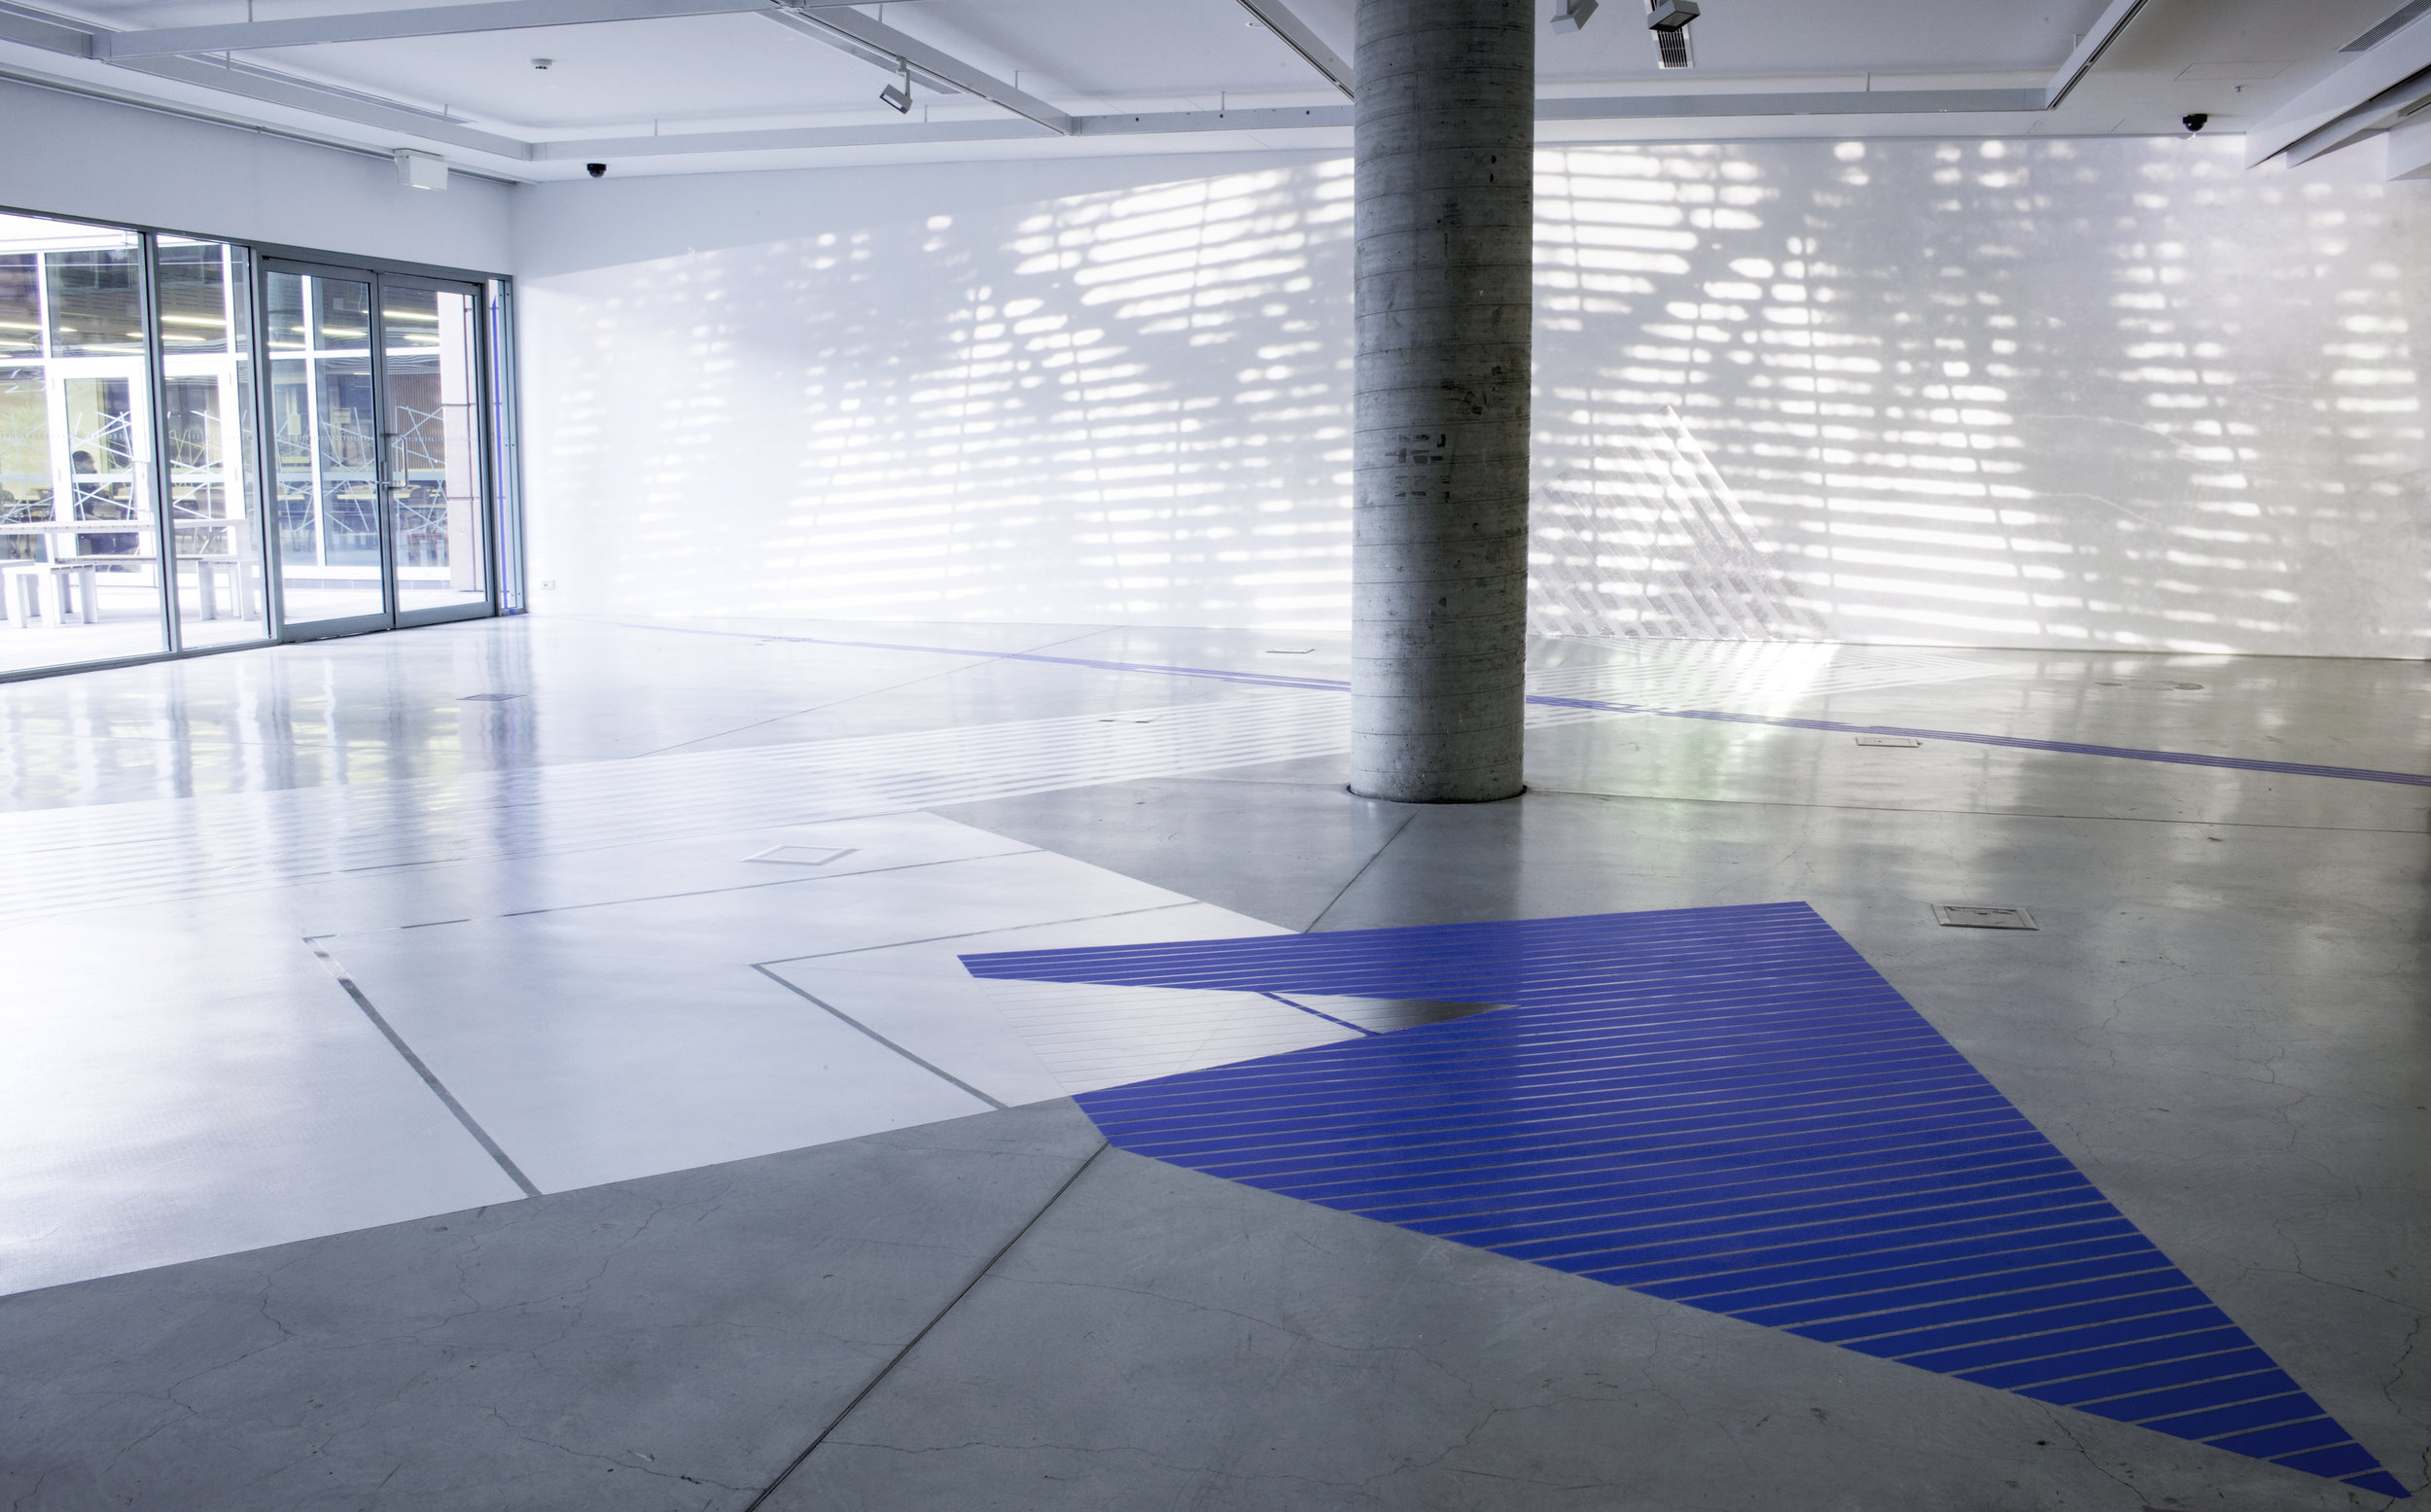 Surface Tension, 2017, UTS ART, Sydney by Biljana Jančić